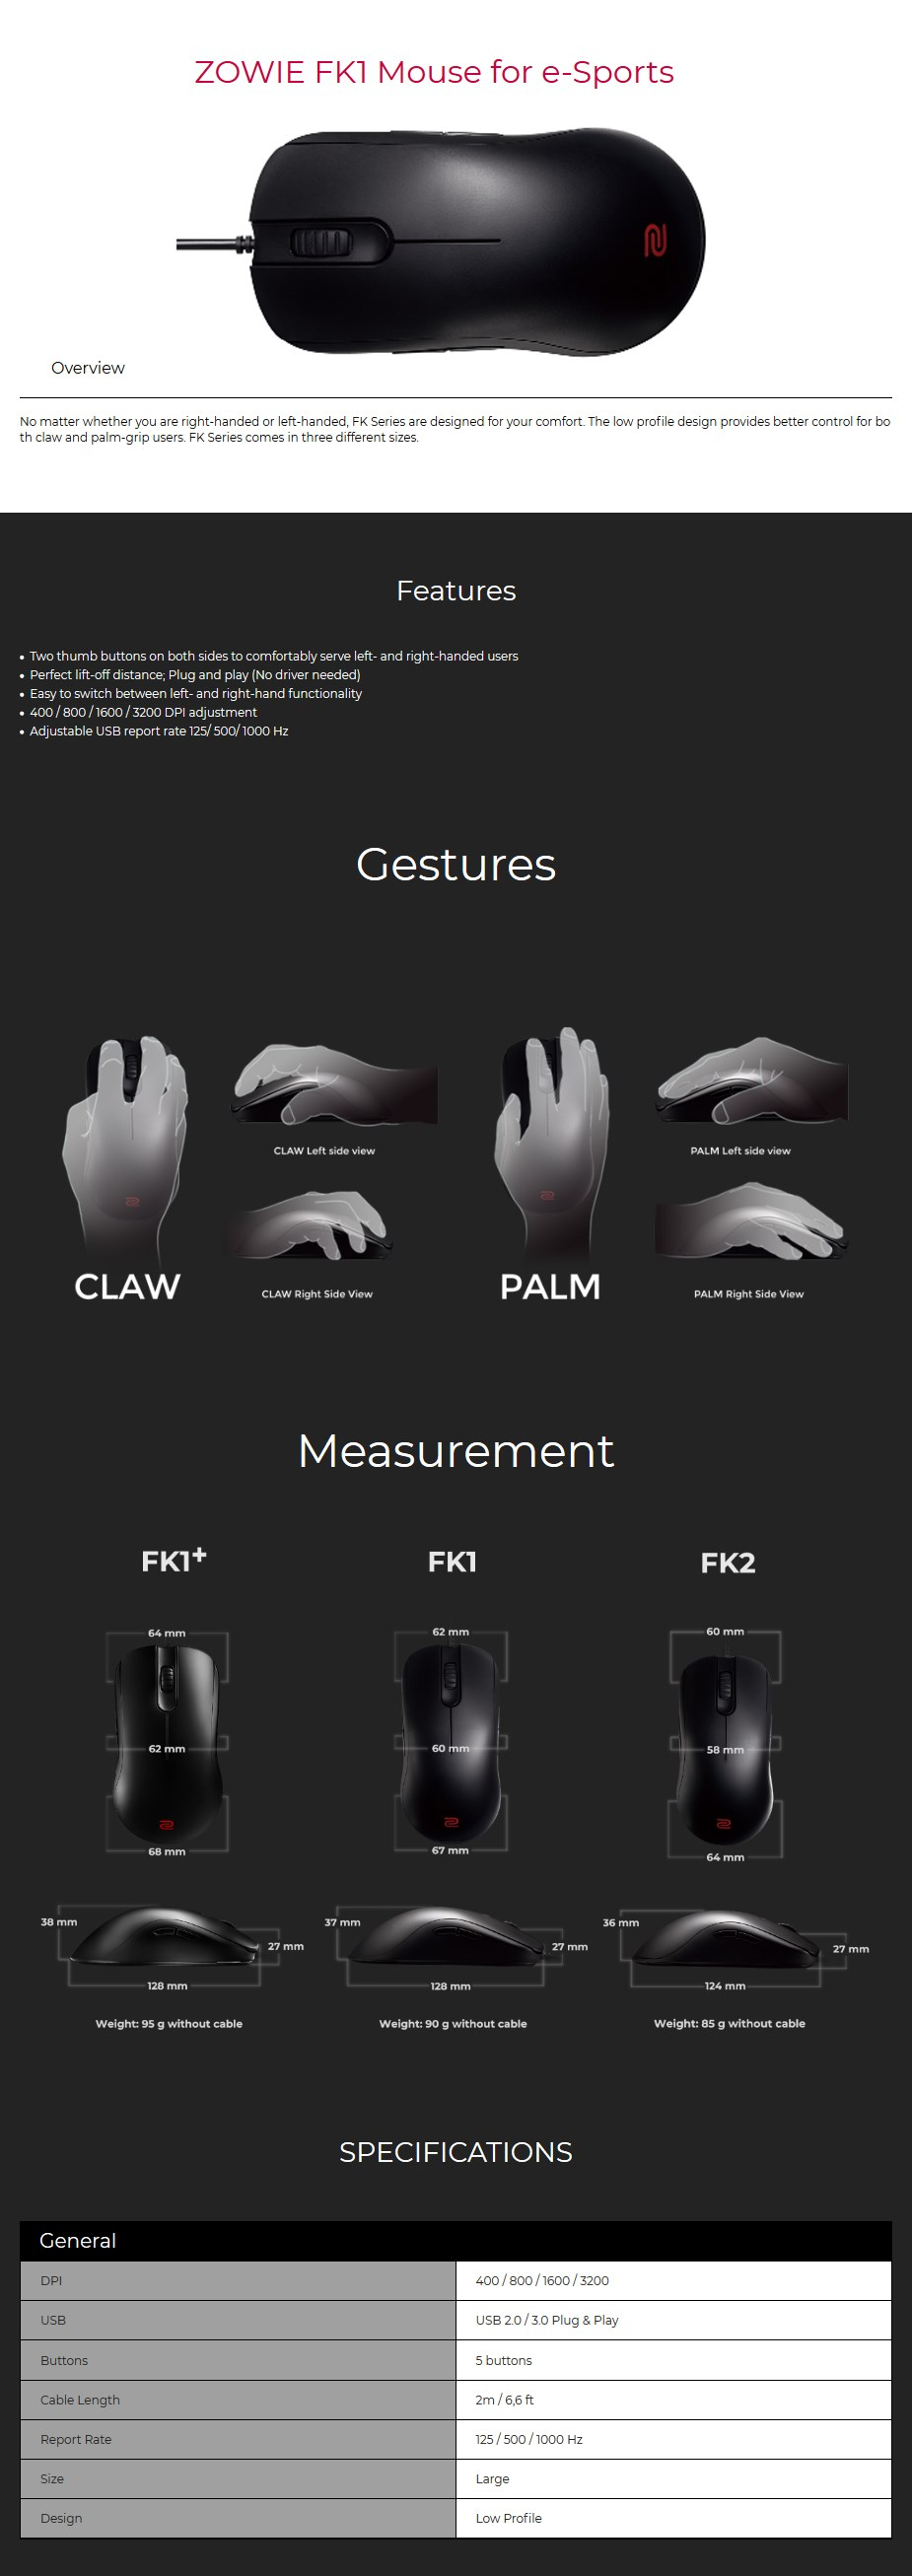 BenQ ZOWIE FK1 Gaming Mouse Display Overview 1